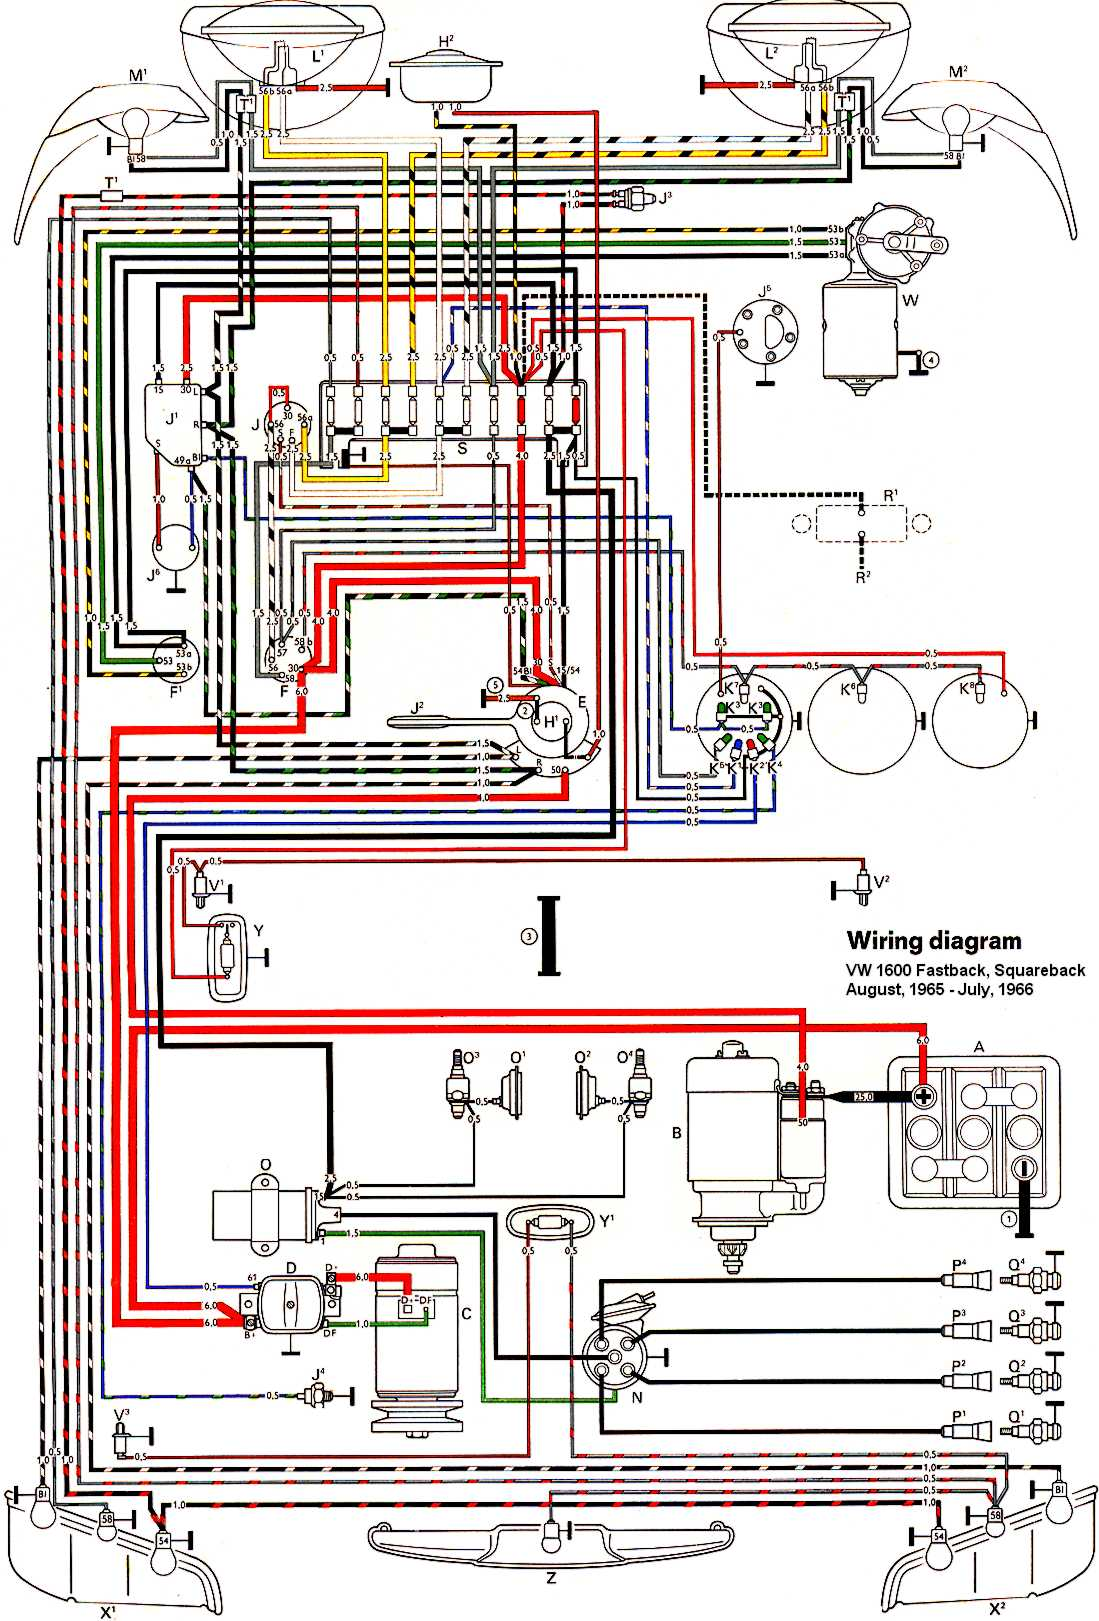 type3_1600_66 thesamba com type 3 wiring diagrams 1970 vw beetle wiring diagram at panicattacktreatment.co